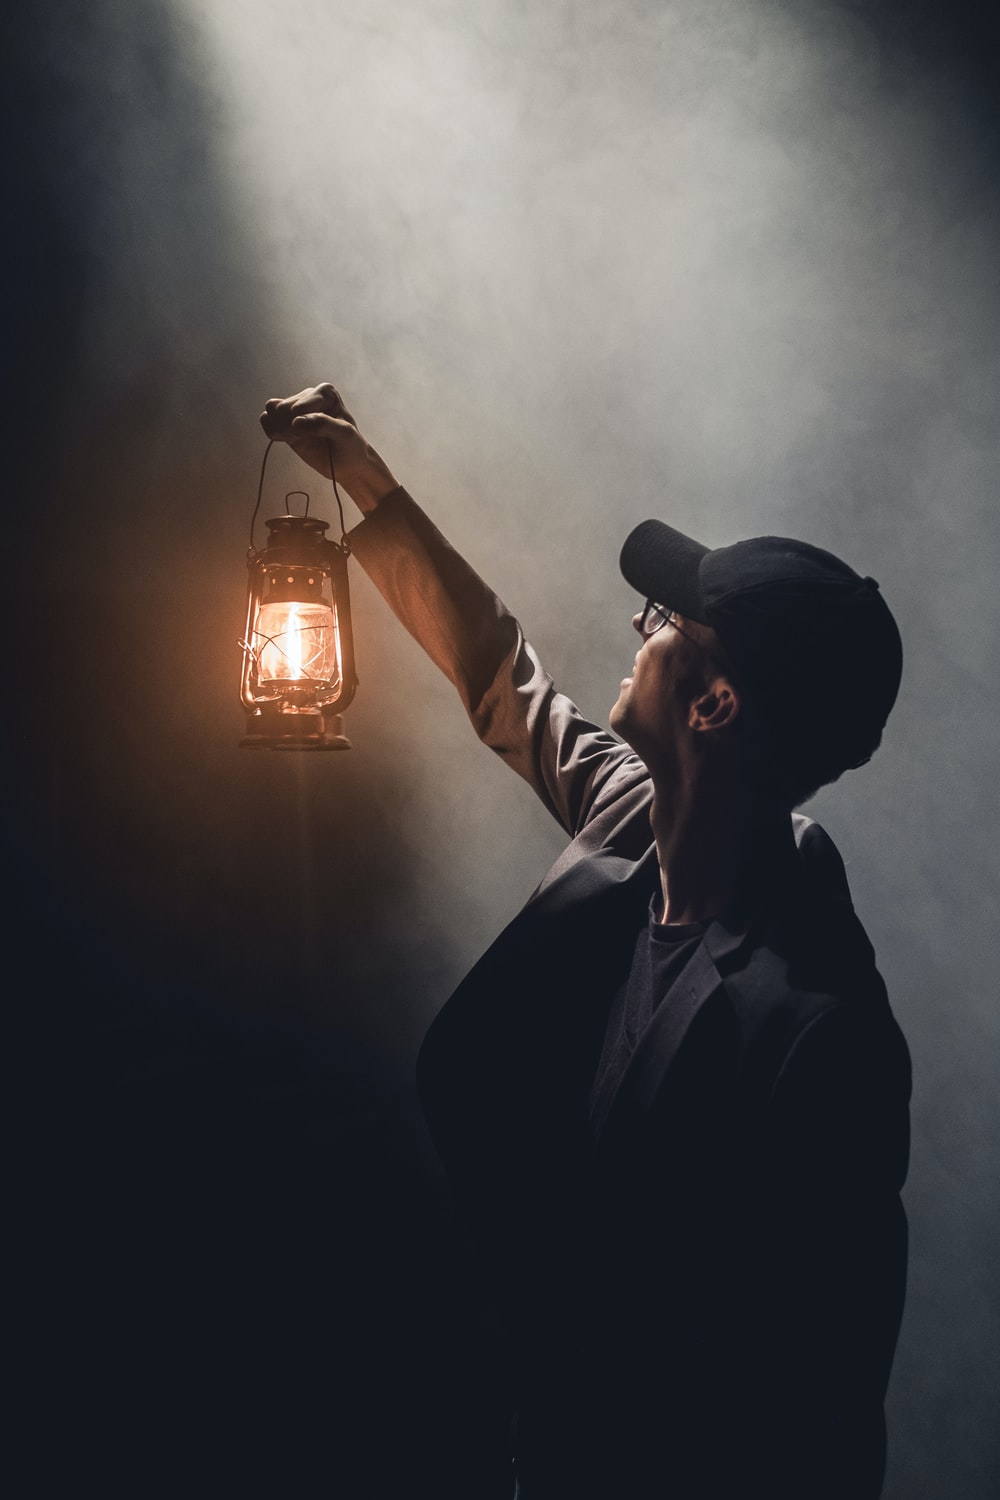 man holding lighted gas lantern